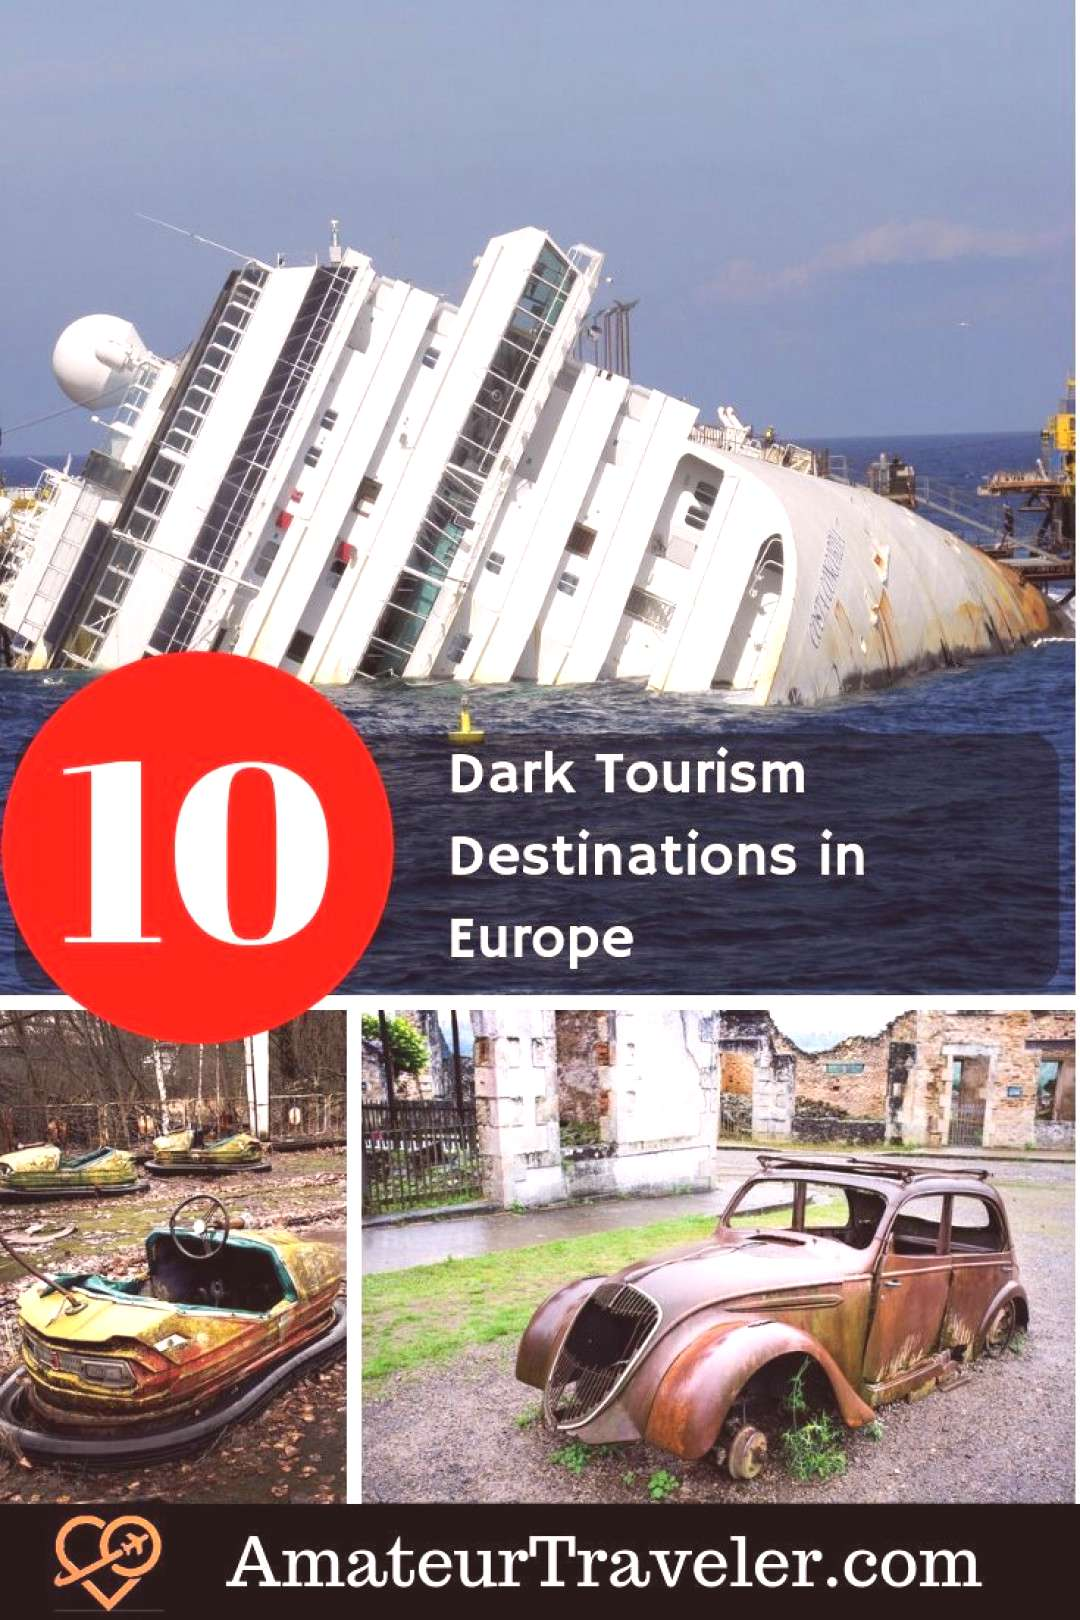 10 Dark Tourism Destinations in Europe 10 Dark Tourism Destinations in Europe